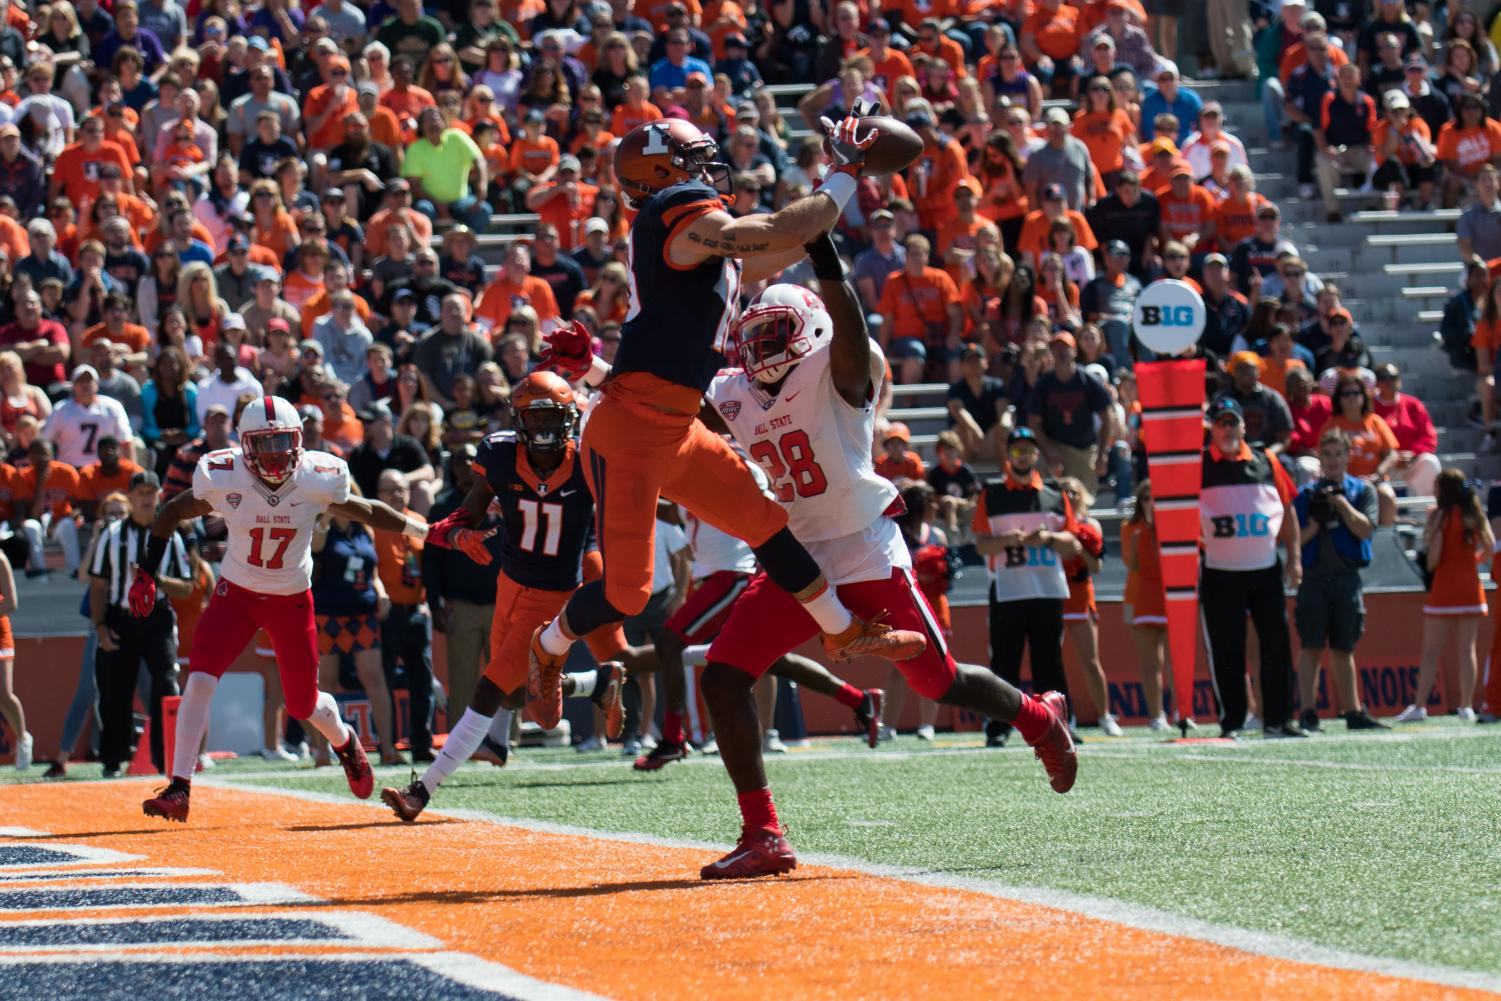 Illinois wide receiver Mike Dudek catches a touchdown pass during the game against Ball State on Sept. 2 at Memorial Stadium. Dudek is getting ready for his senior season.